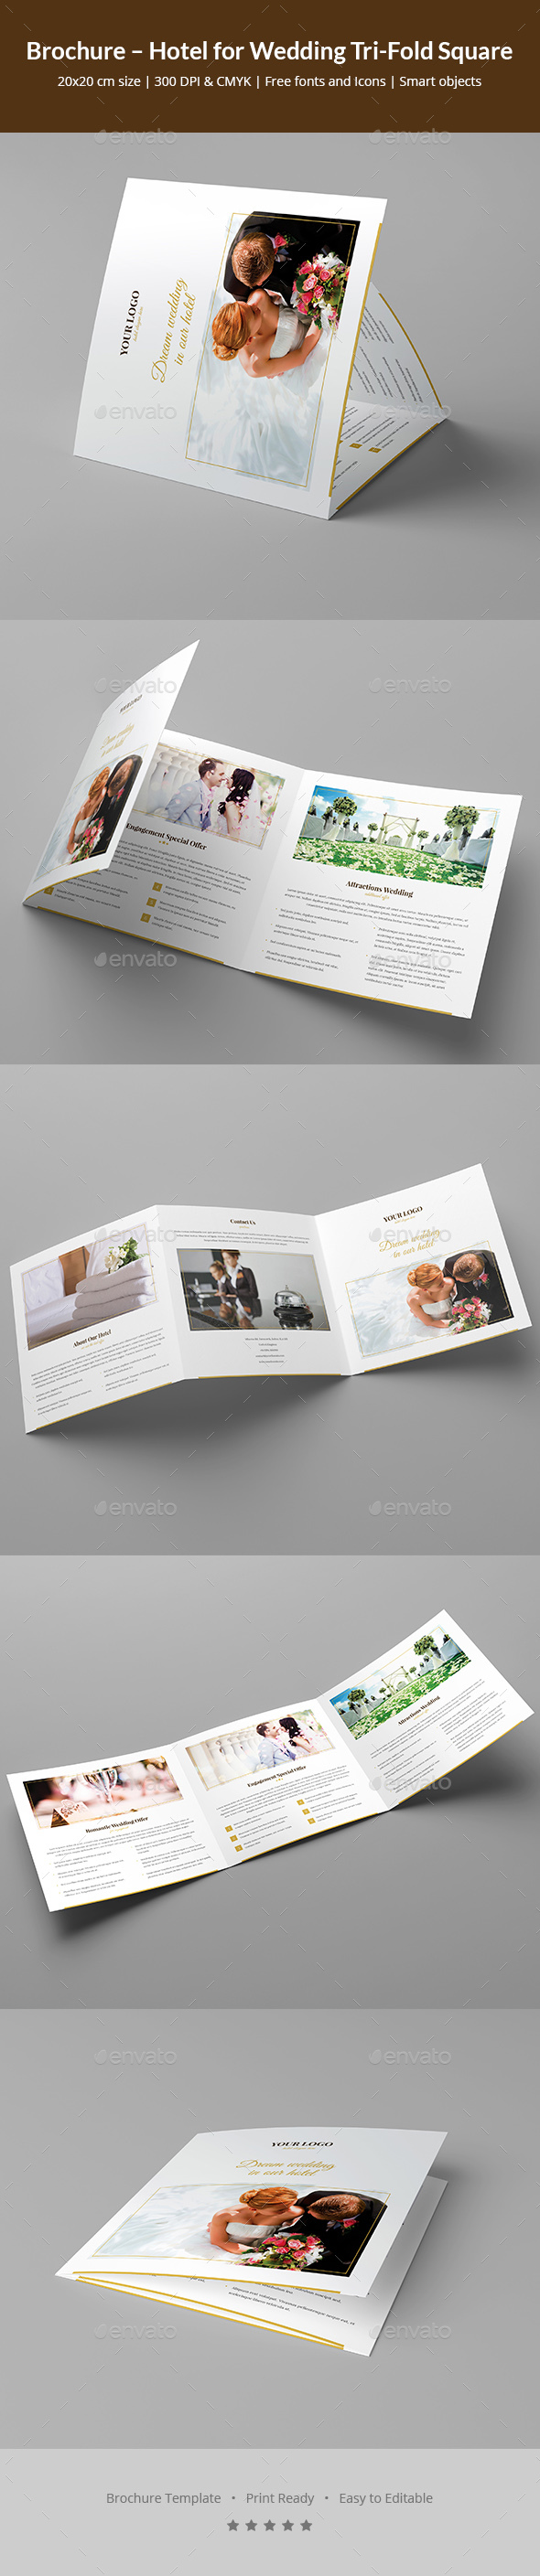 Brochure hotel for wedding tri fold square by artbart for Hotel brochure design templates